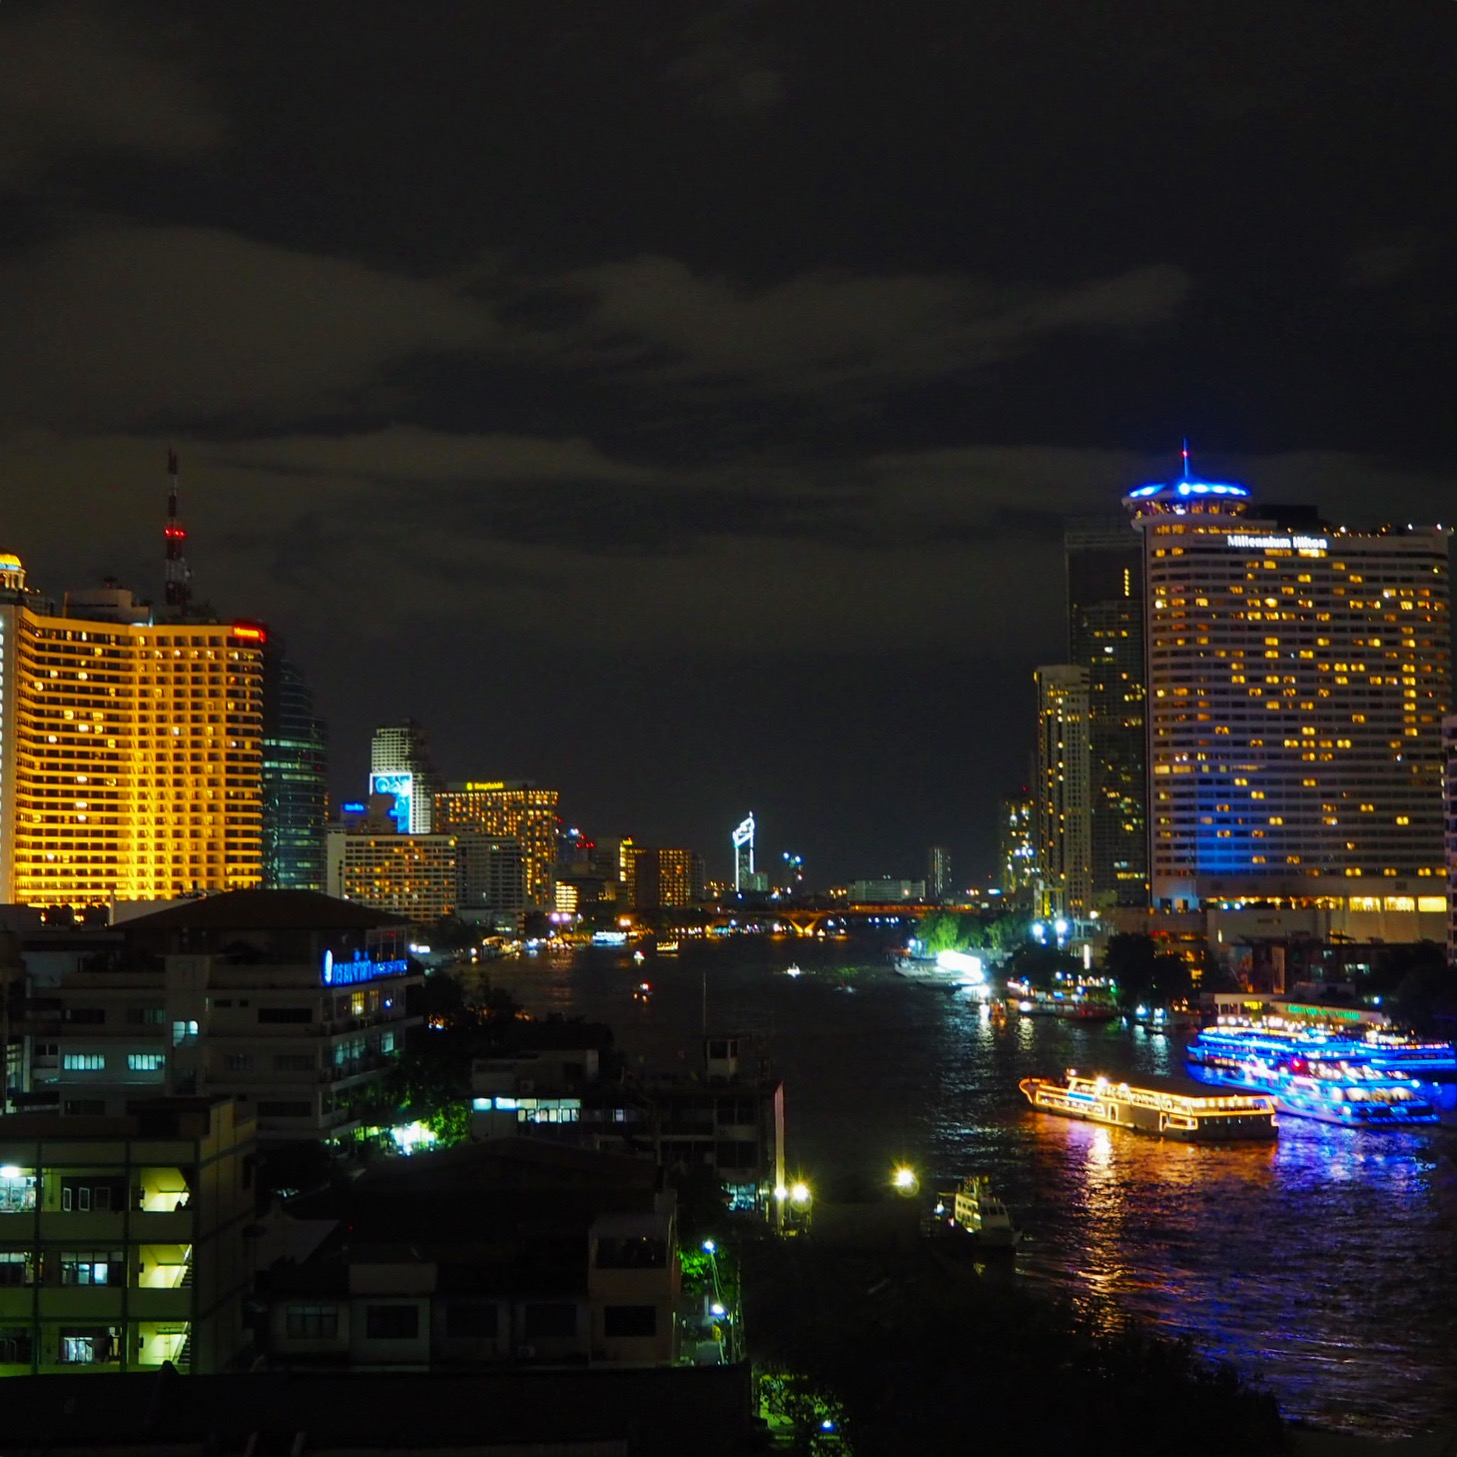 Rooftop view of the Chao Phraya River